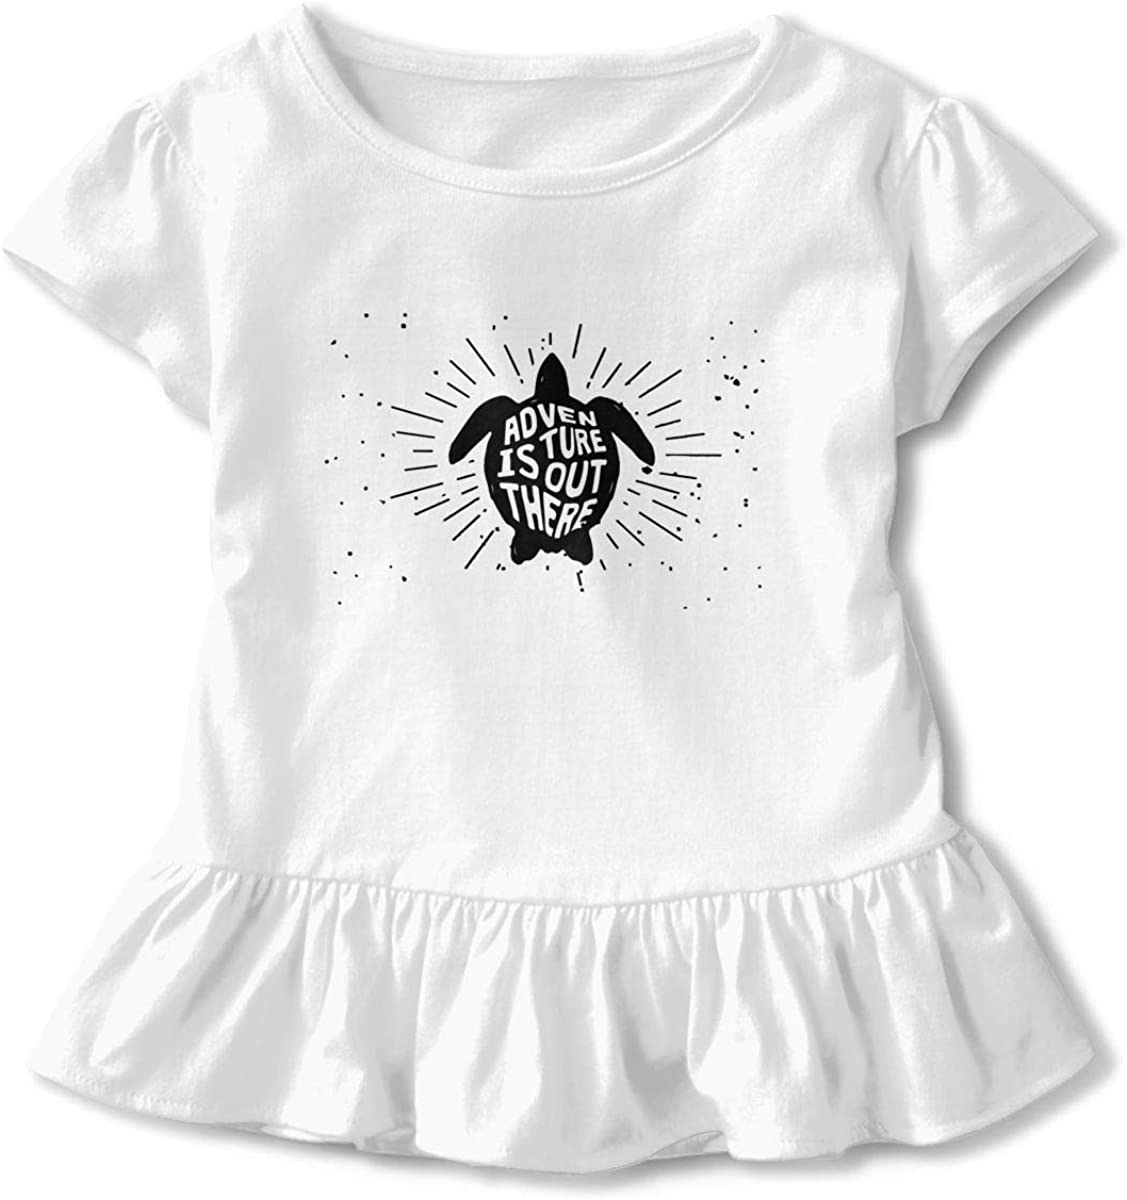 Turtle Silhouette Vintage Little Girls Short Sleeve Peplum Tee Tops